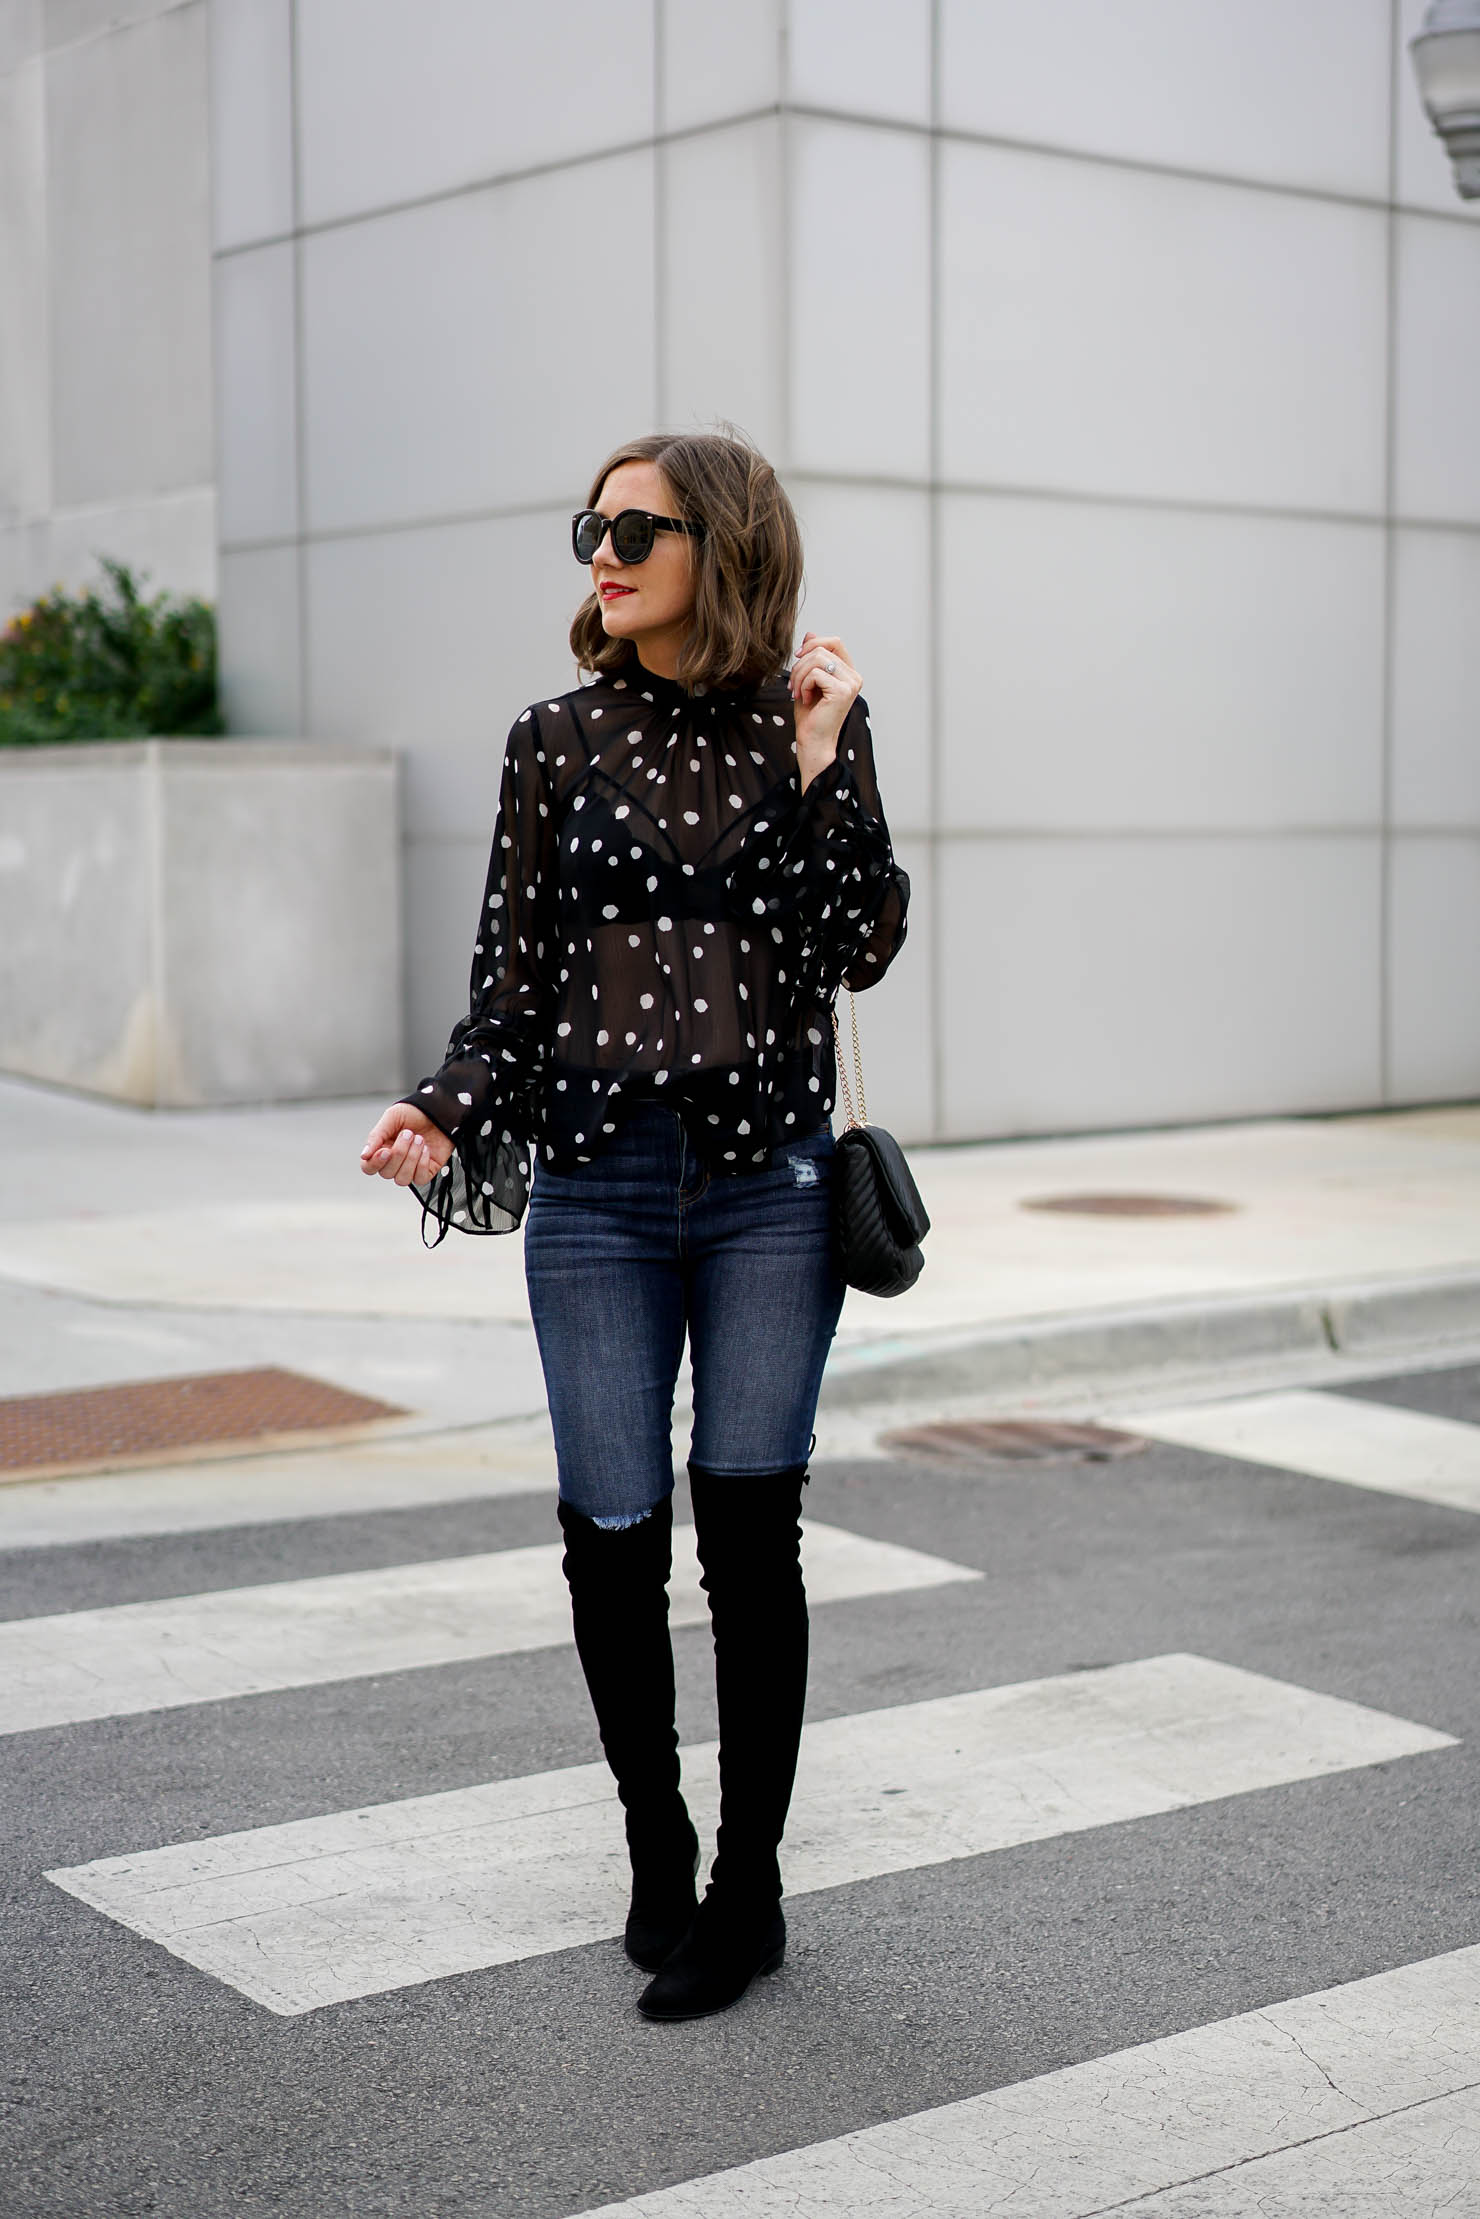 winter date night outfit idea, topshop sheer polka dot blouse, over the knee boots, cold weather date night ideas, how to look stylish in cold weather